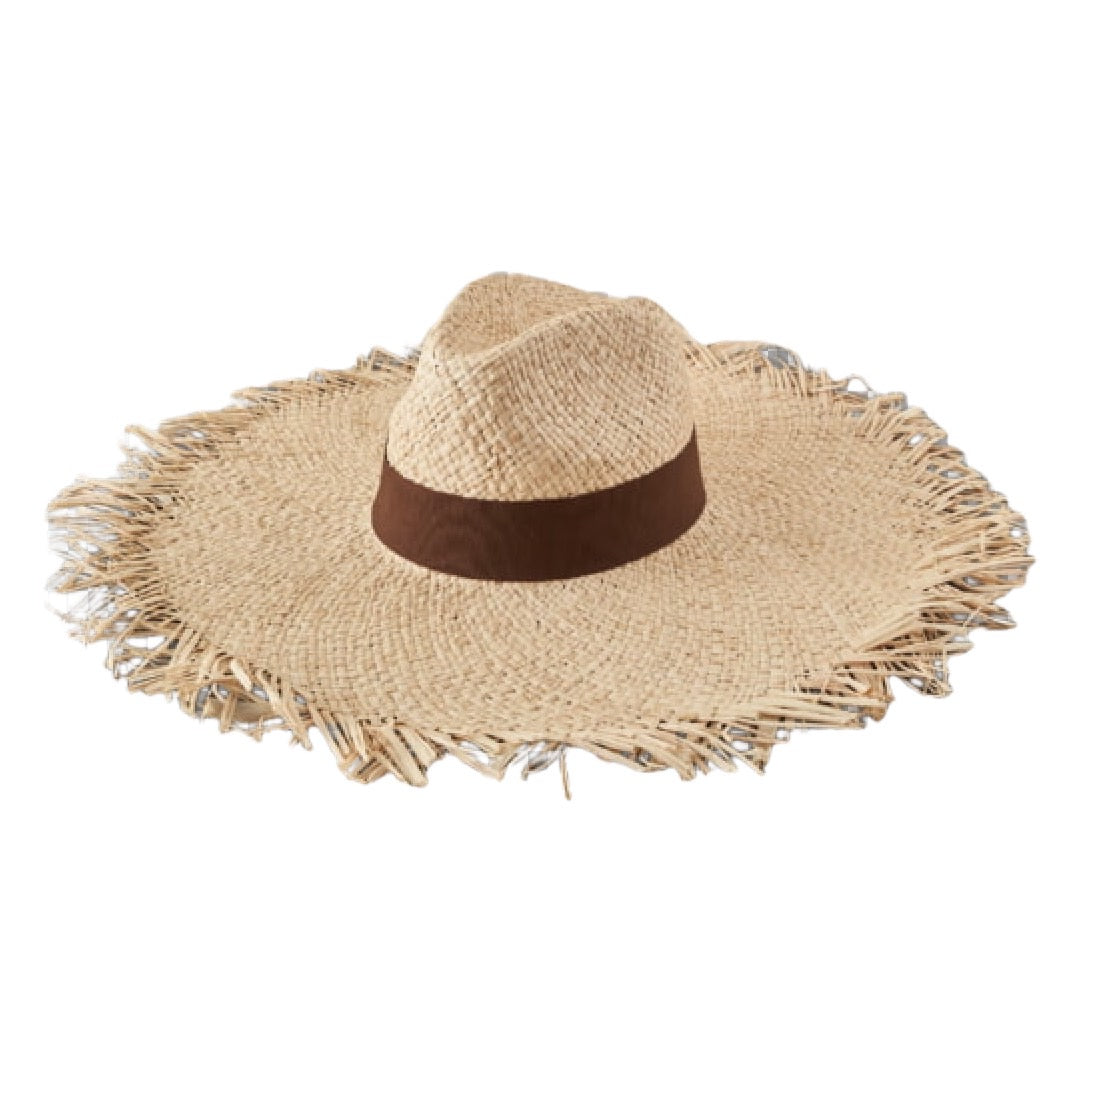 Large Brim Straw Hat with Cotton Ribbon